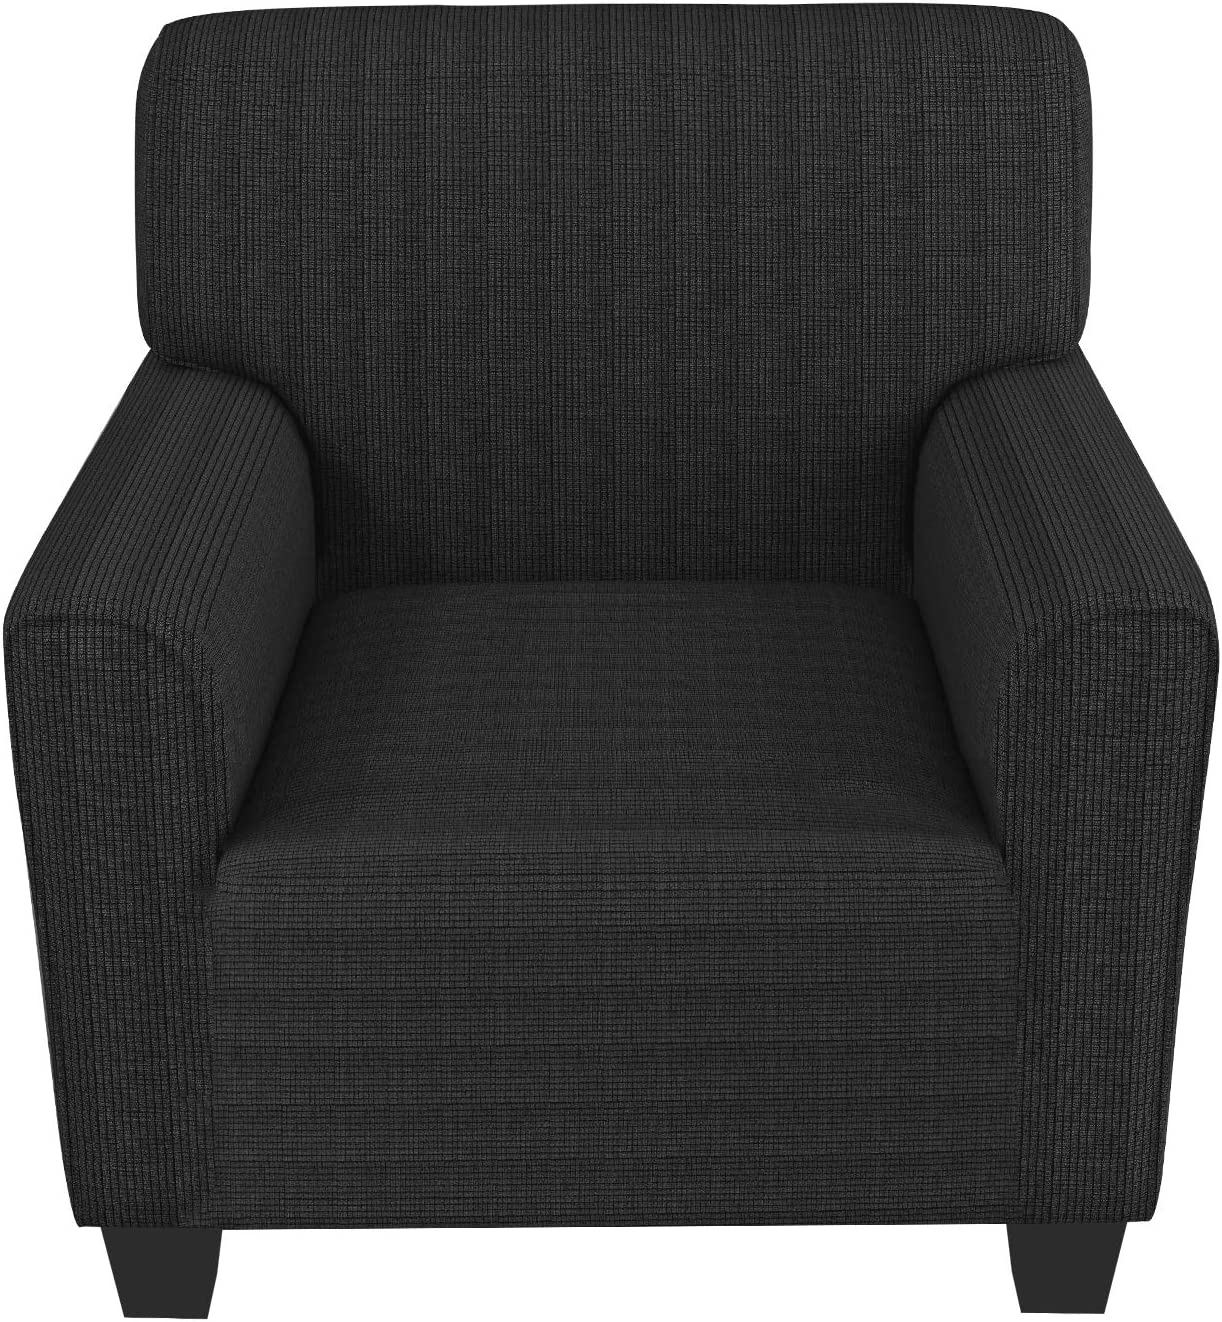 ZNSAYOTX Chair Slipcovers with Arms for Living Room High Stretchy Spandex Pet Friendly Armchair Furniture Protection Covers (Dark Grey, Chair)